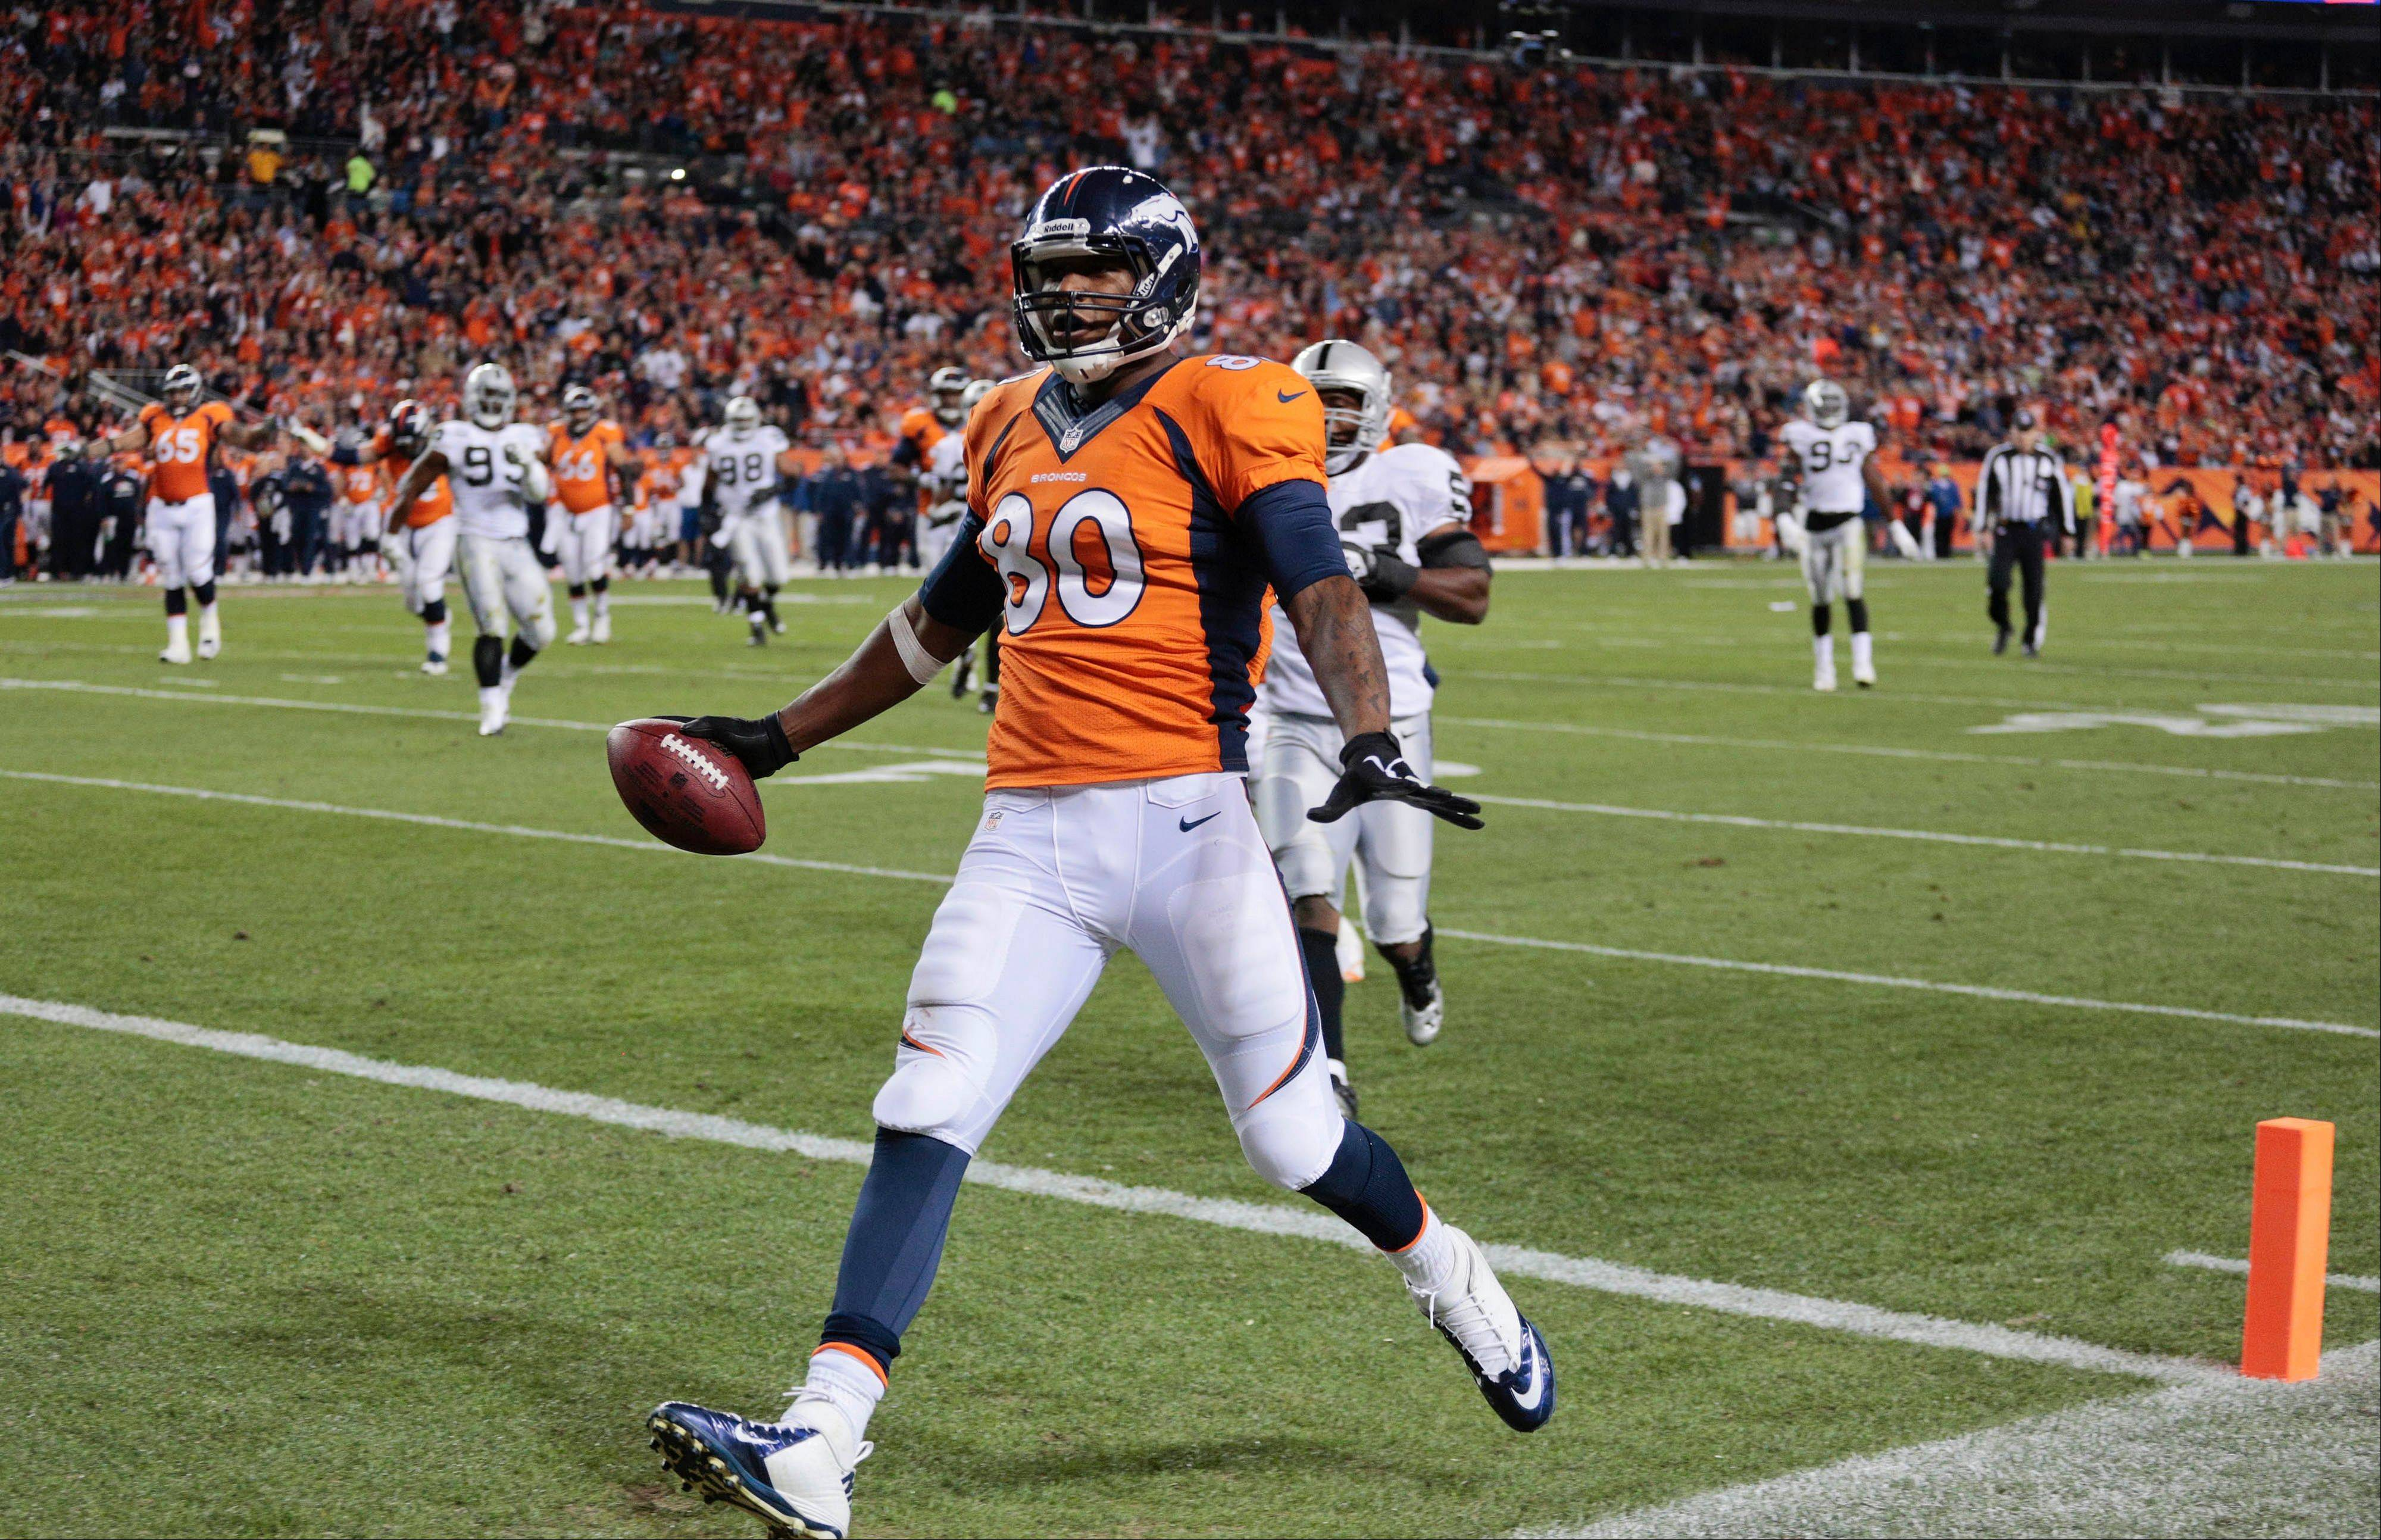 Denver tight end Julius Thomas crosses the goal line for a touchdown Monday night at home against the Oakland Raiders.